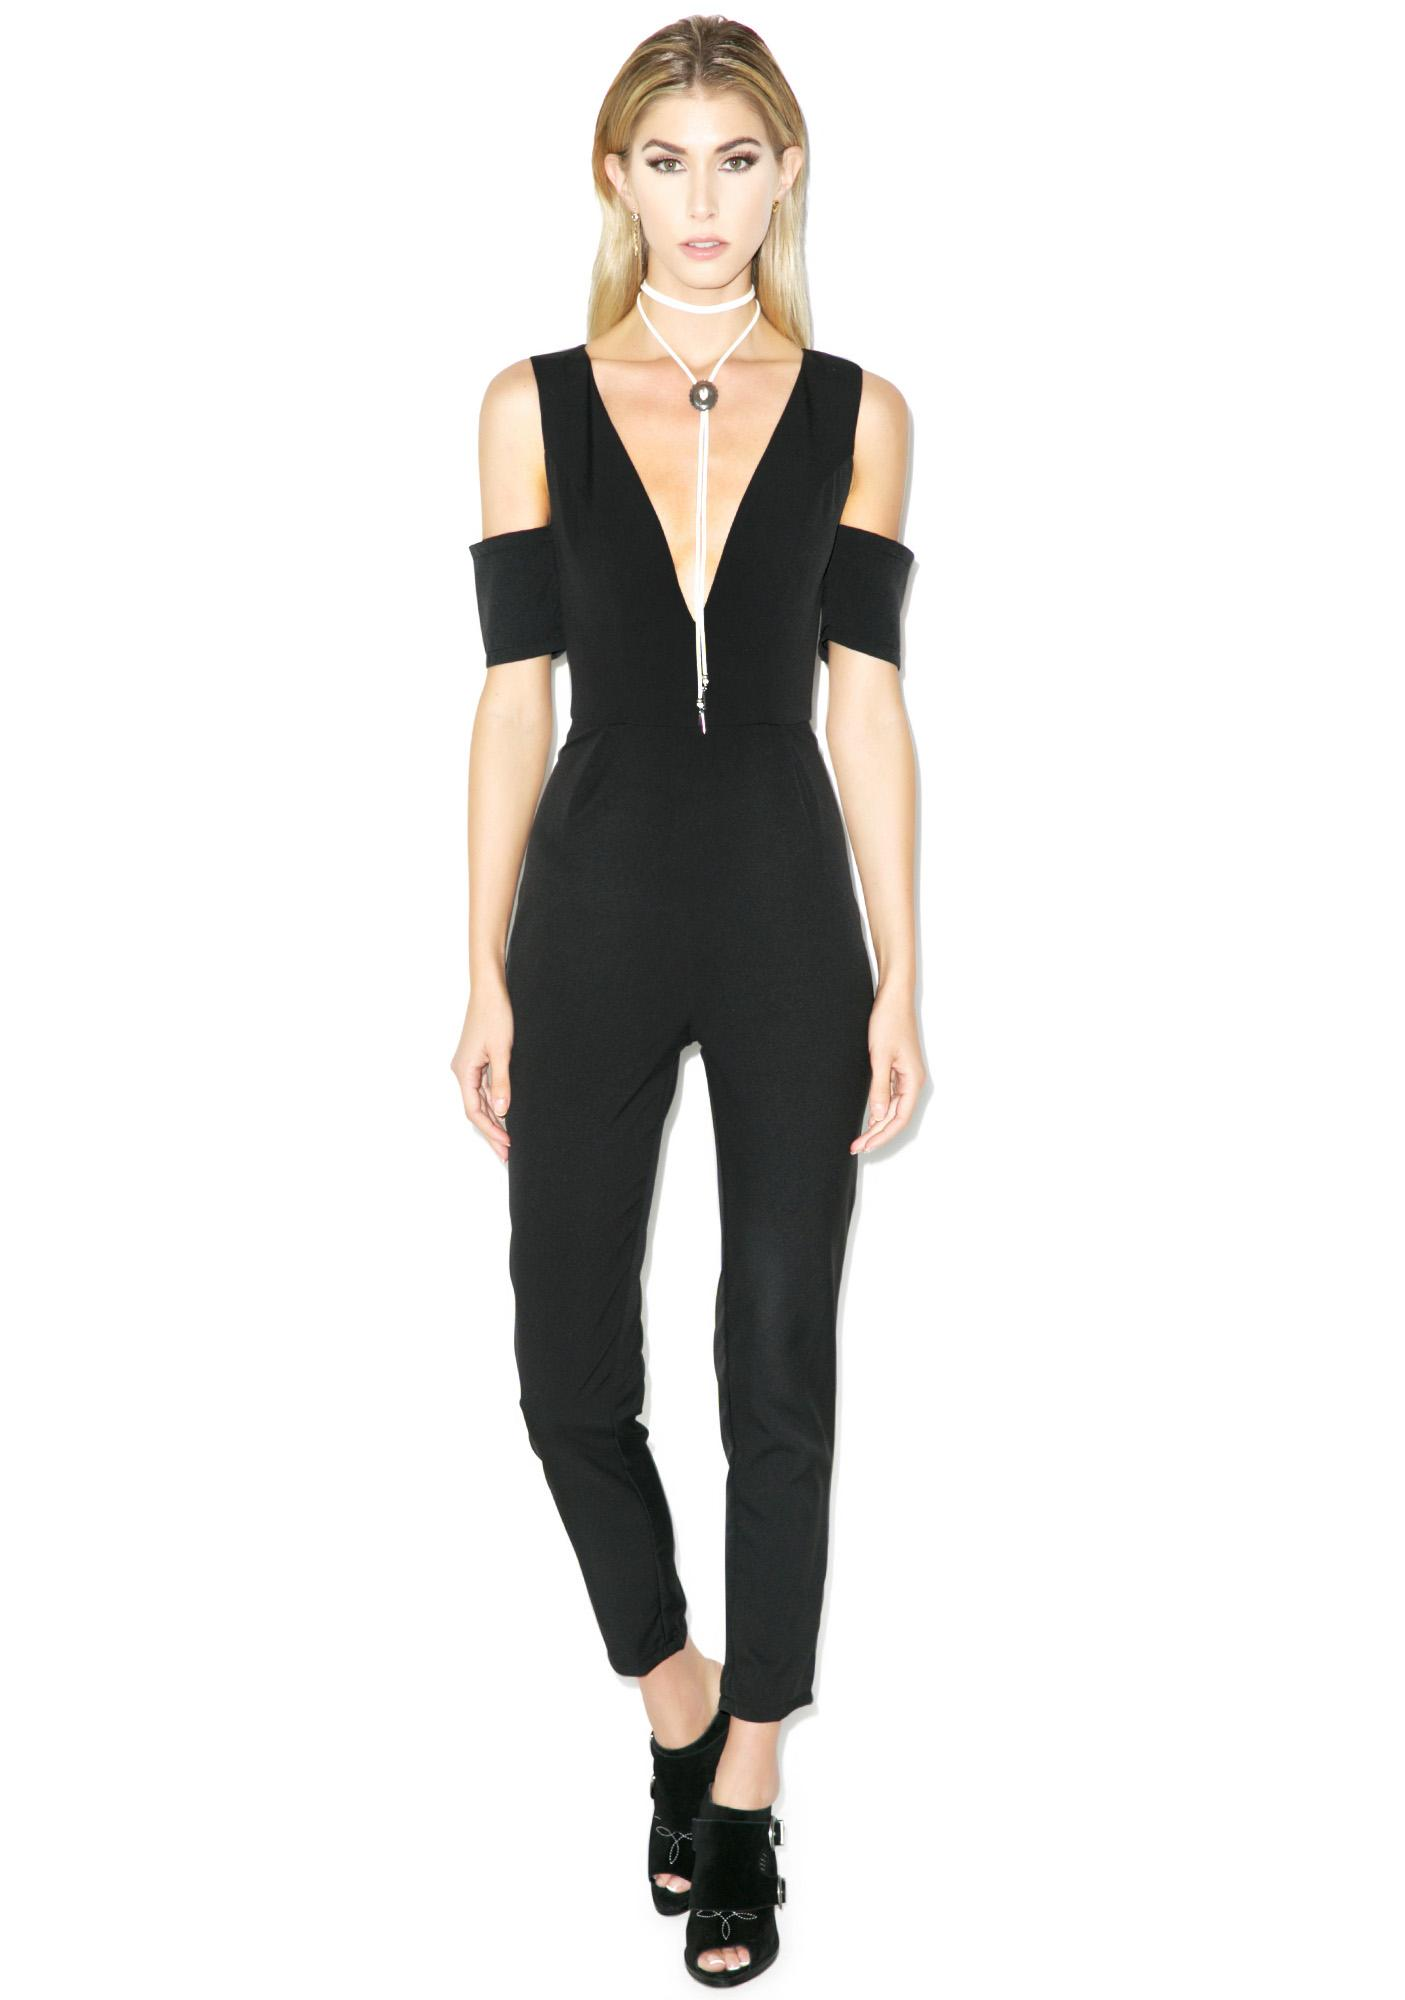 Tiger Mist Plunging Heights Jumpsuit